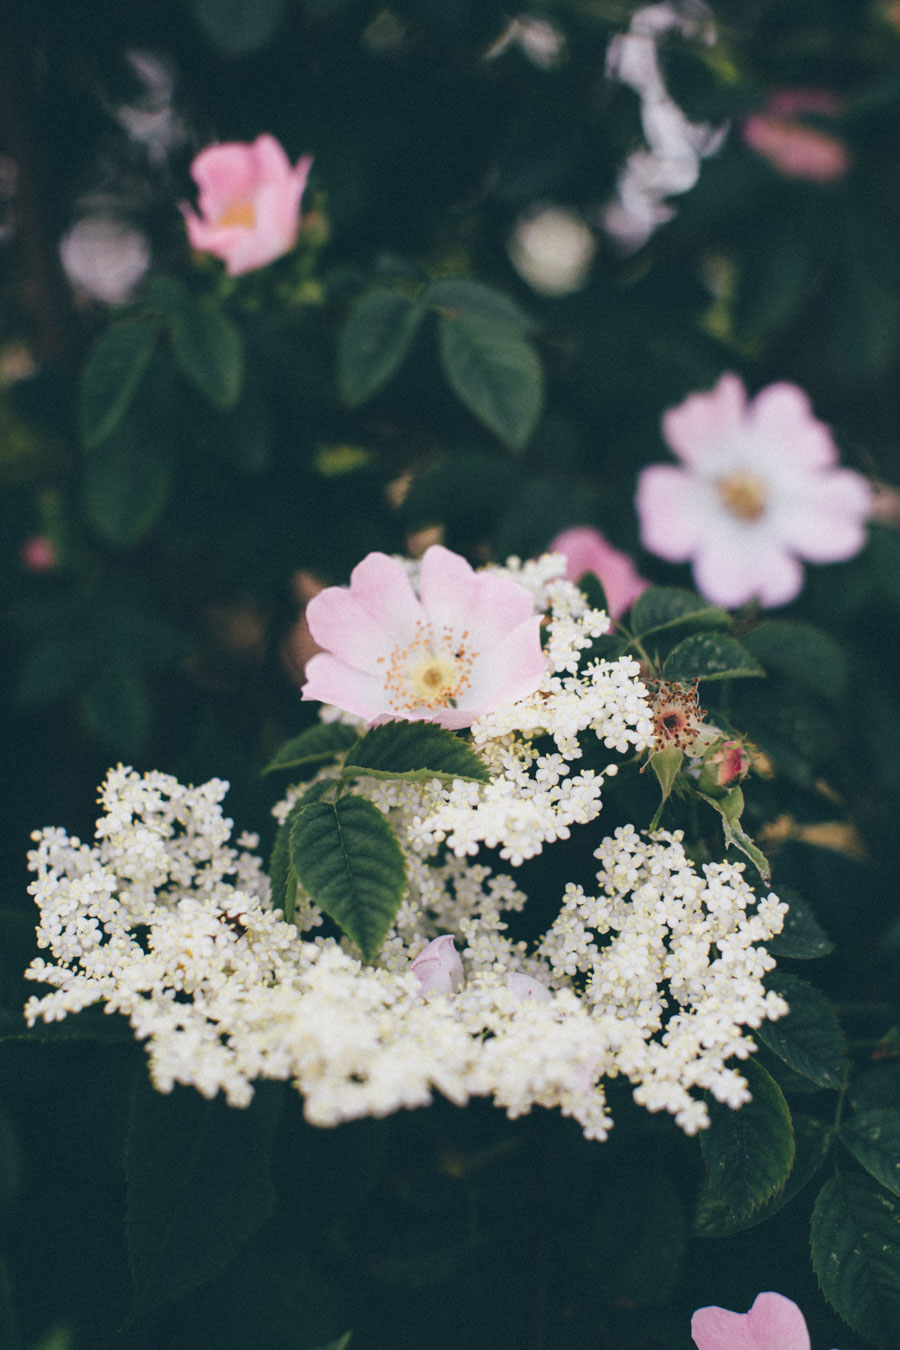 Elder flower and roses